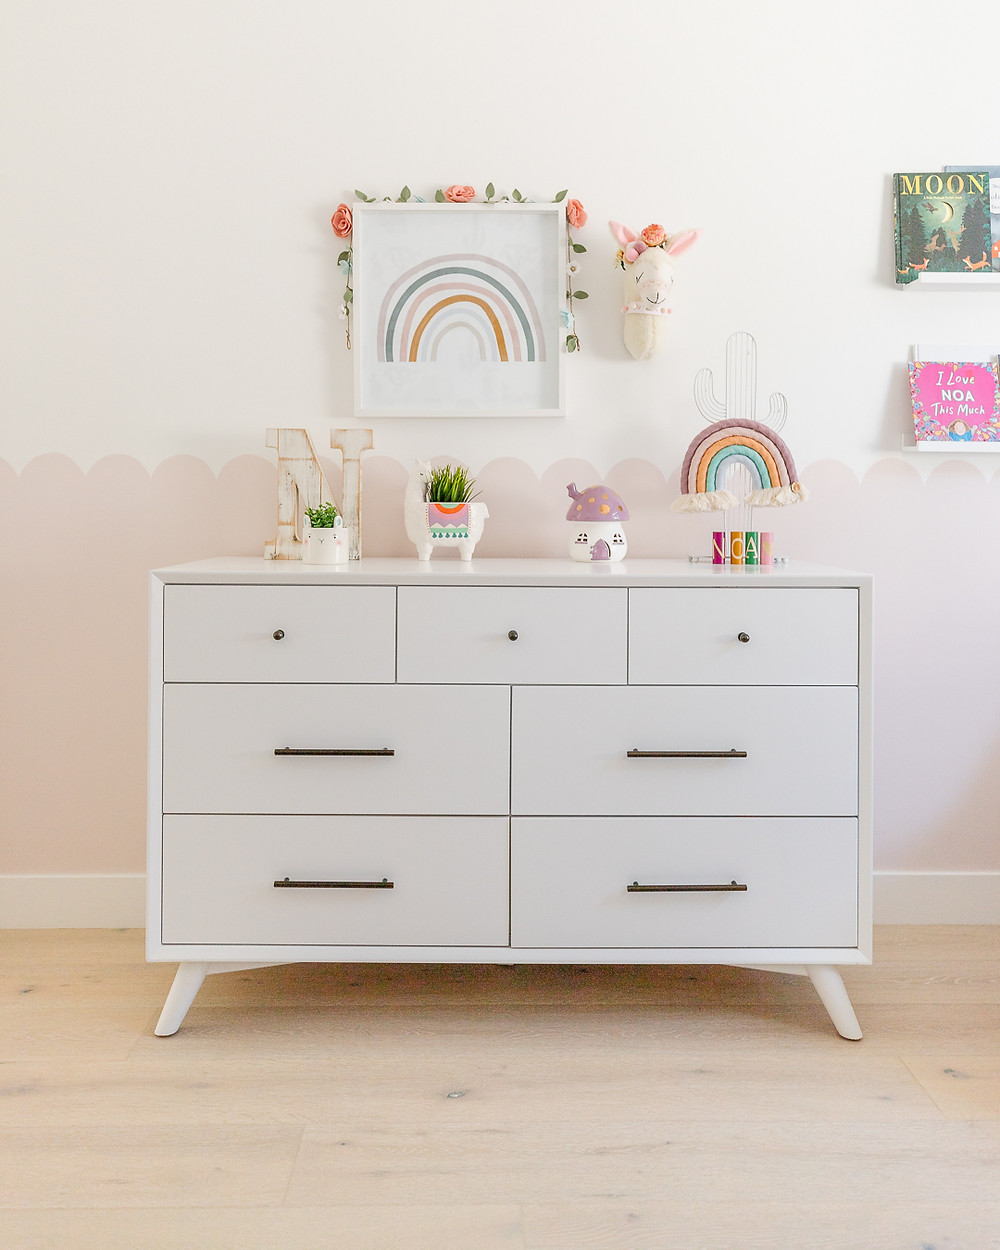 A white dresser in a little girls bedroom with white oak hardwood and boho accents in front of a scalloped pink wall.